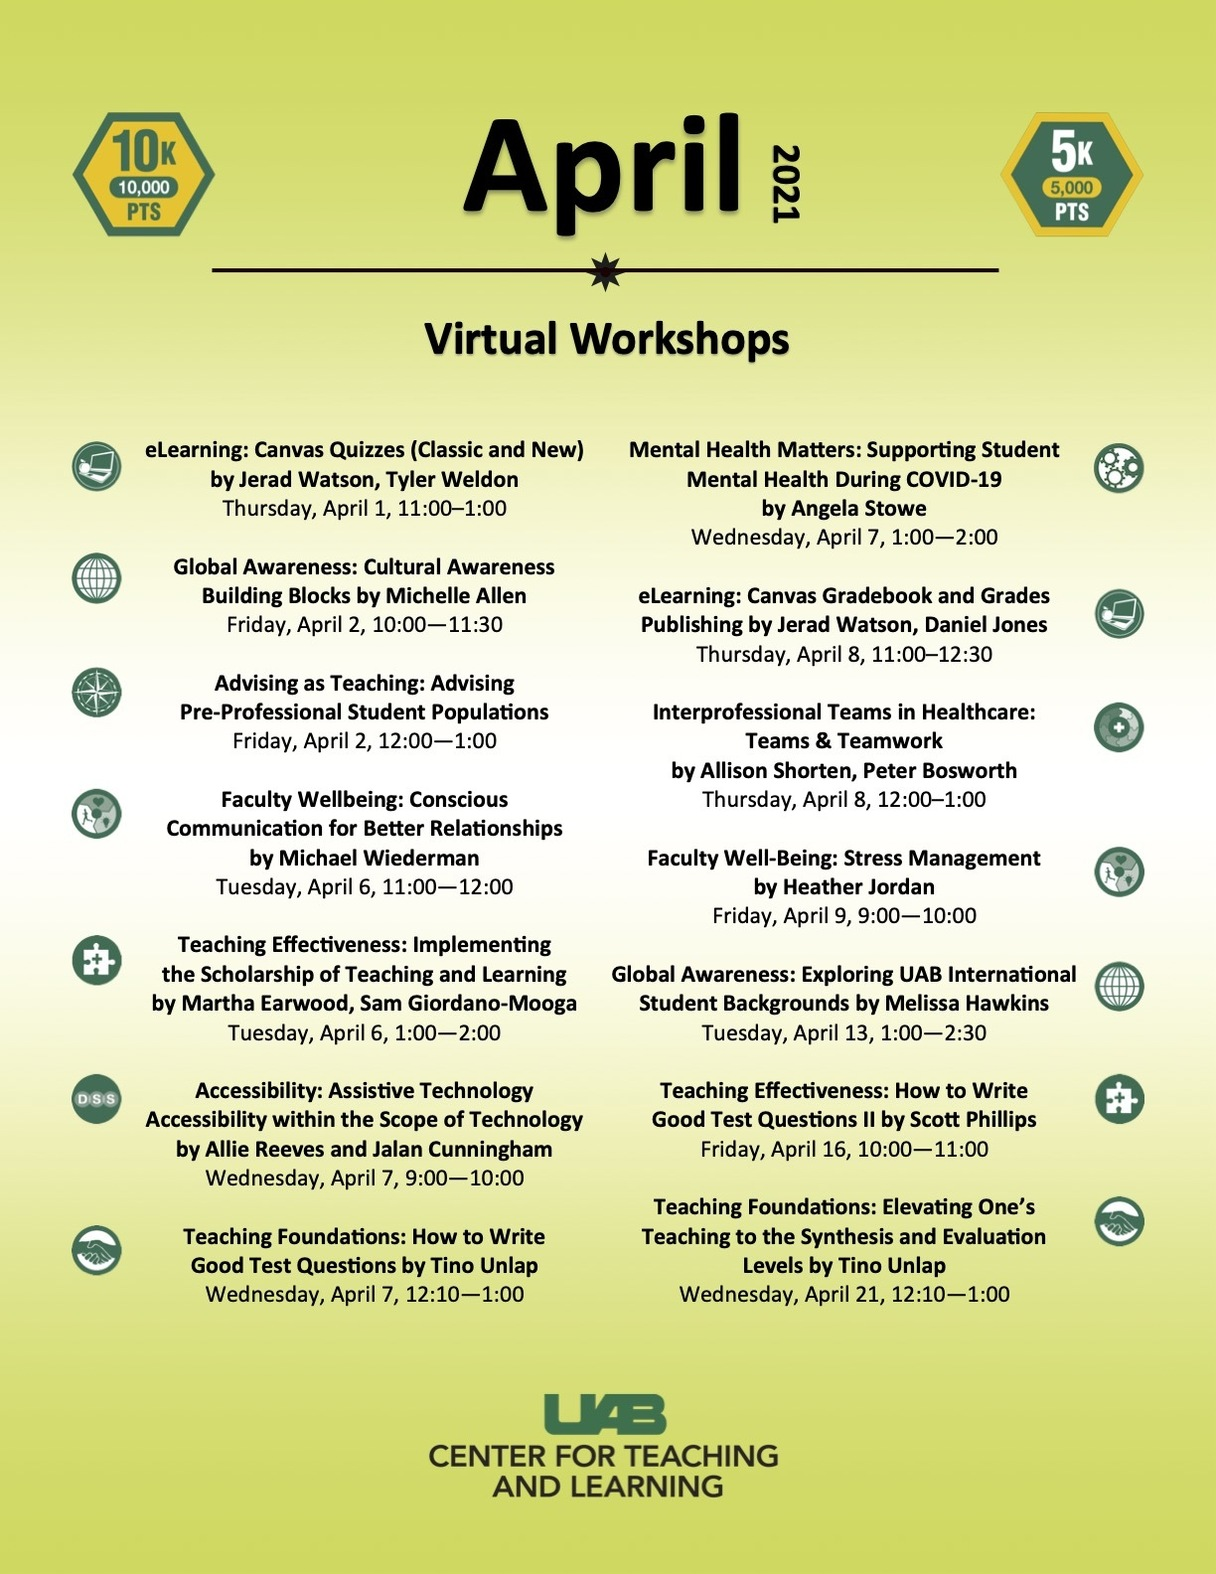 This month's workshops flyer from the CTL